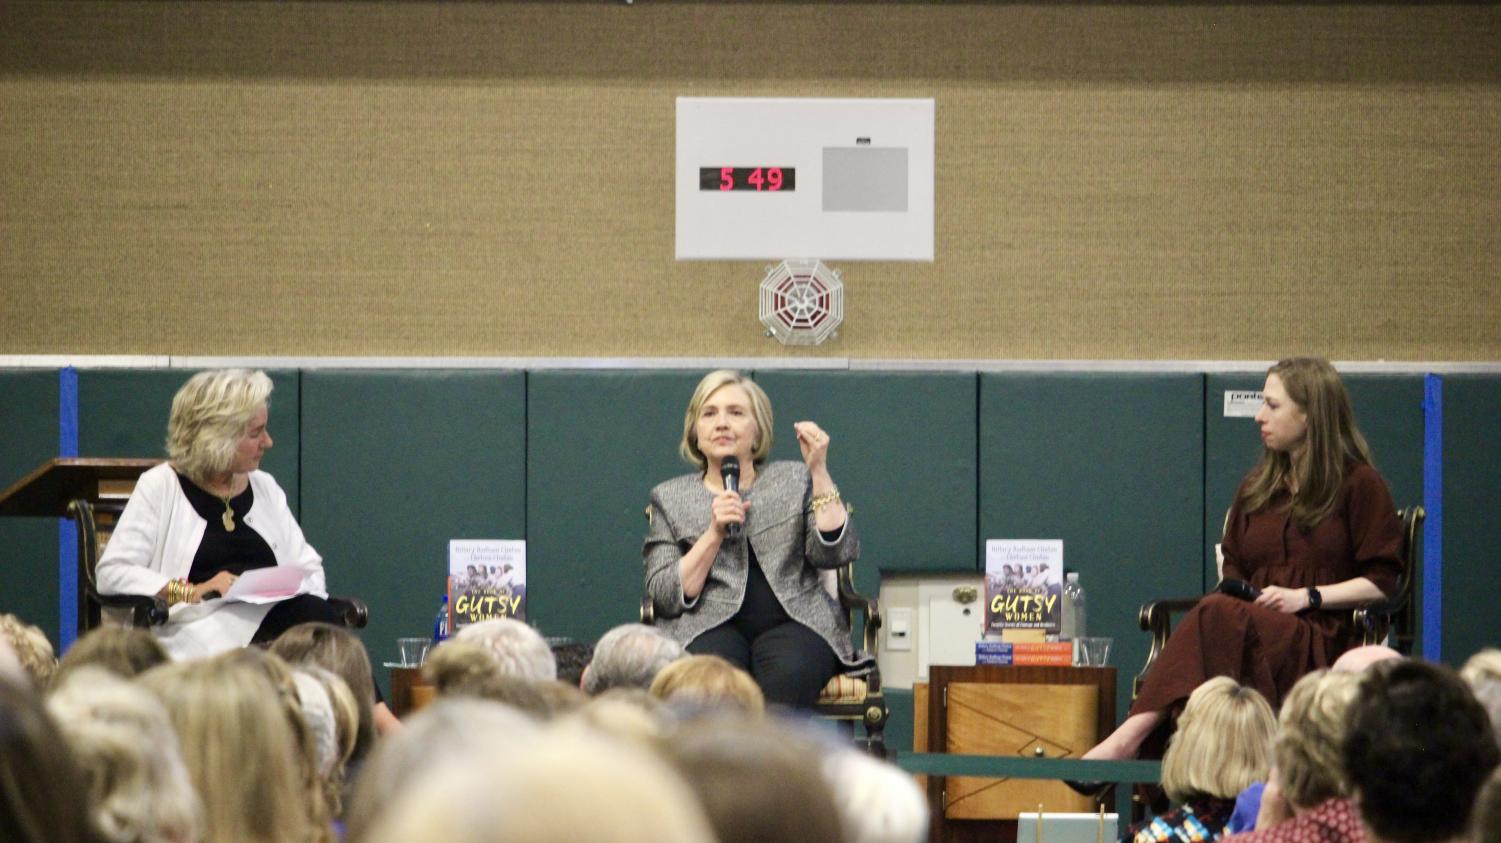 Hillary and Chelsea Clinton speak to a crowd at SRV on Oct. 20, promoting their new book